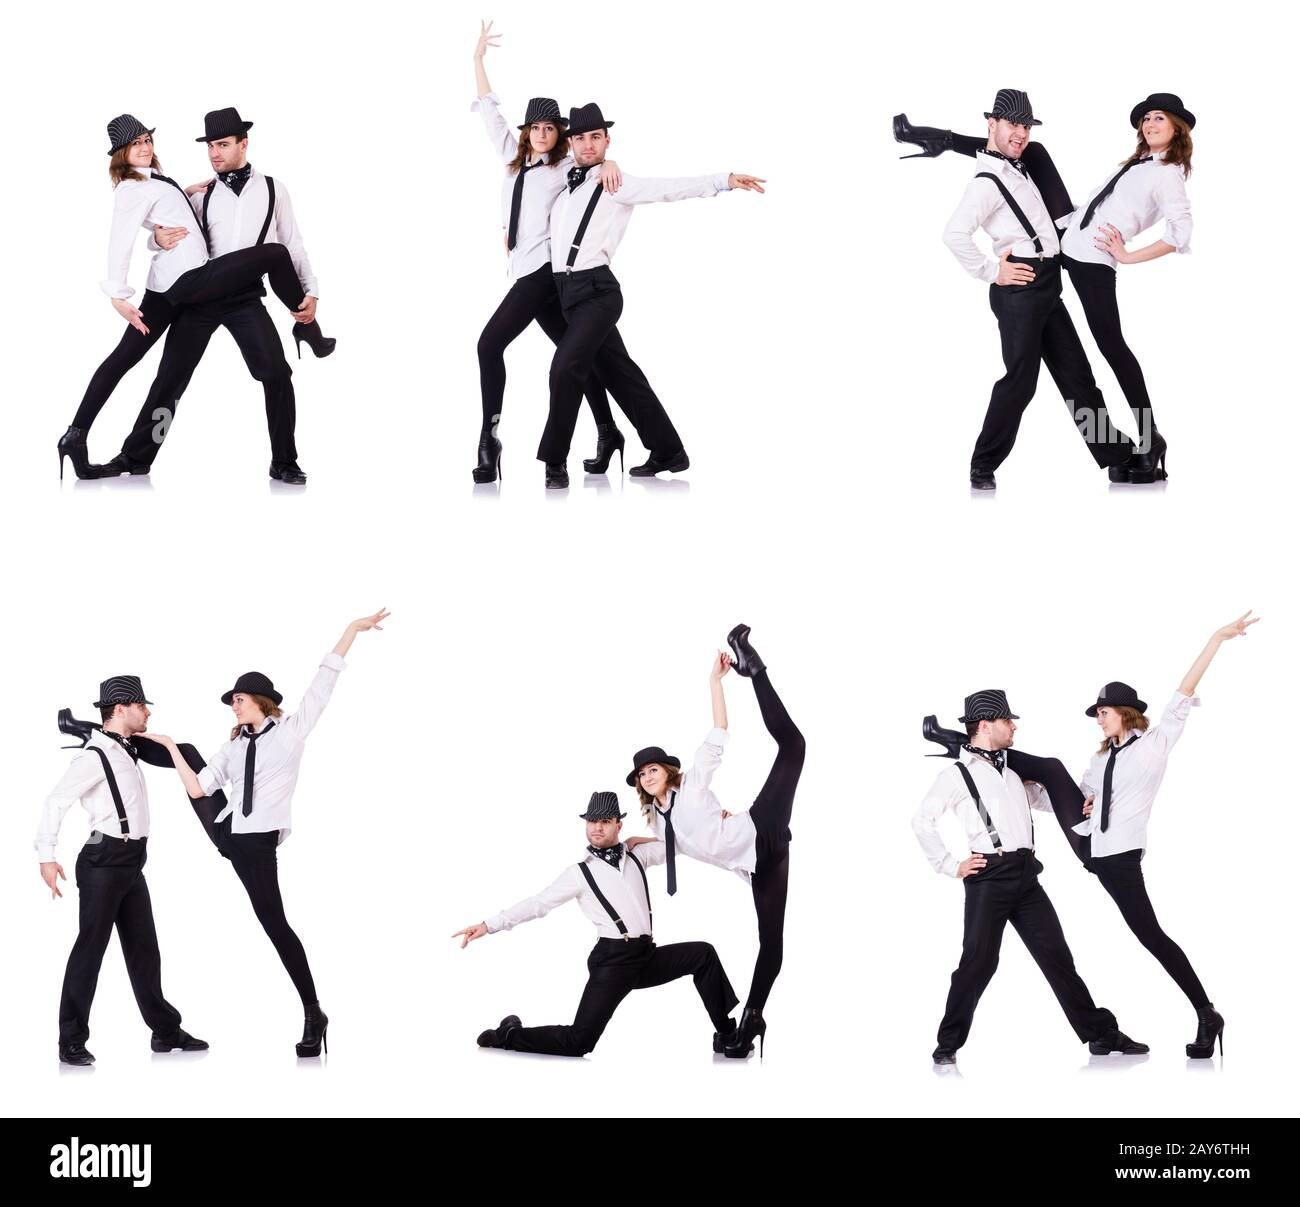 Pair of dancers dancing modern dances Stock Photo